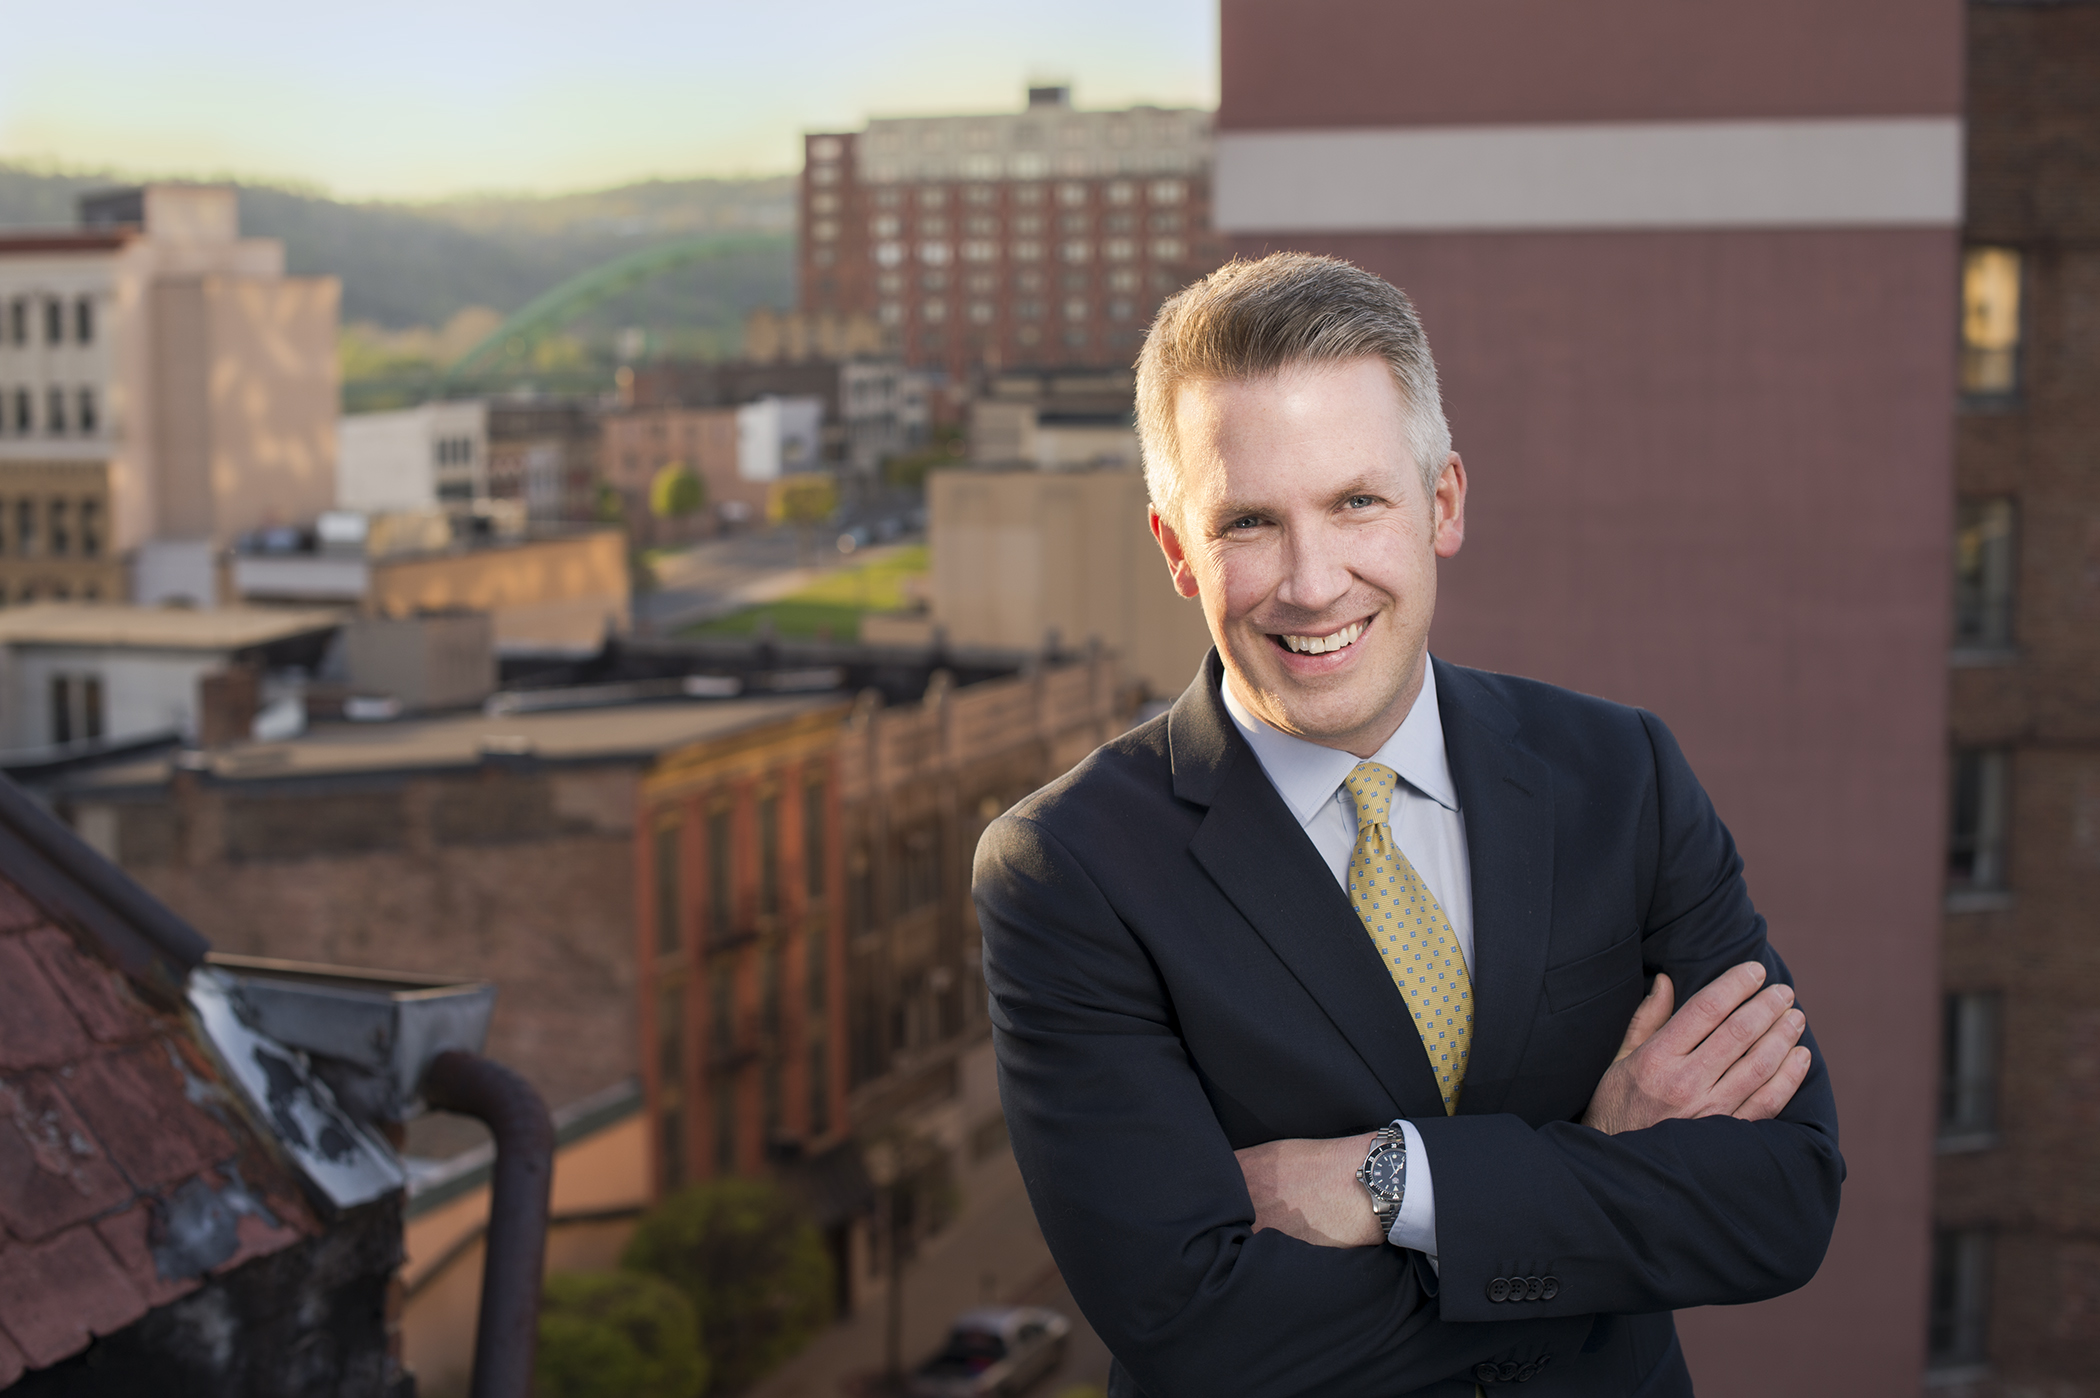 Glenn Elliott will run for Mayor of Wheeling in 2016. (Photo by Rebecca Kiger)